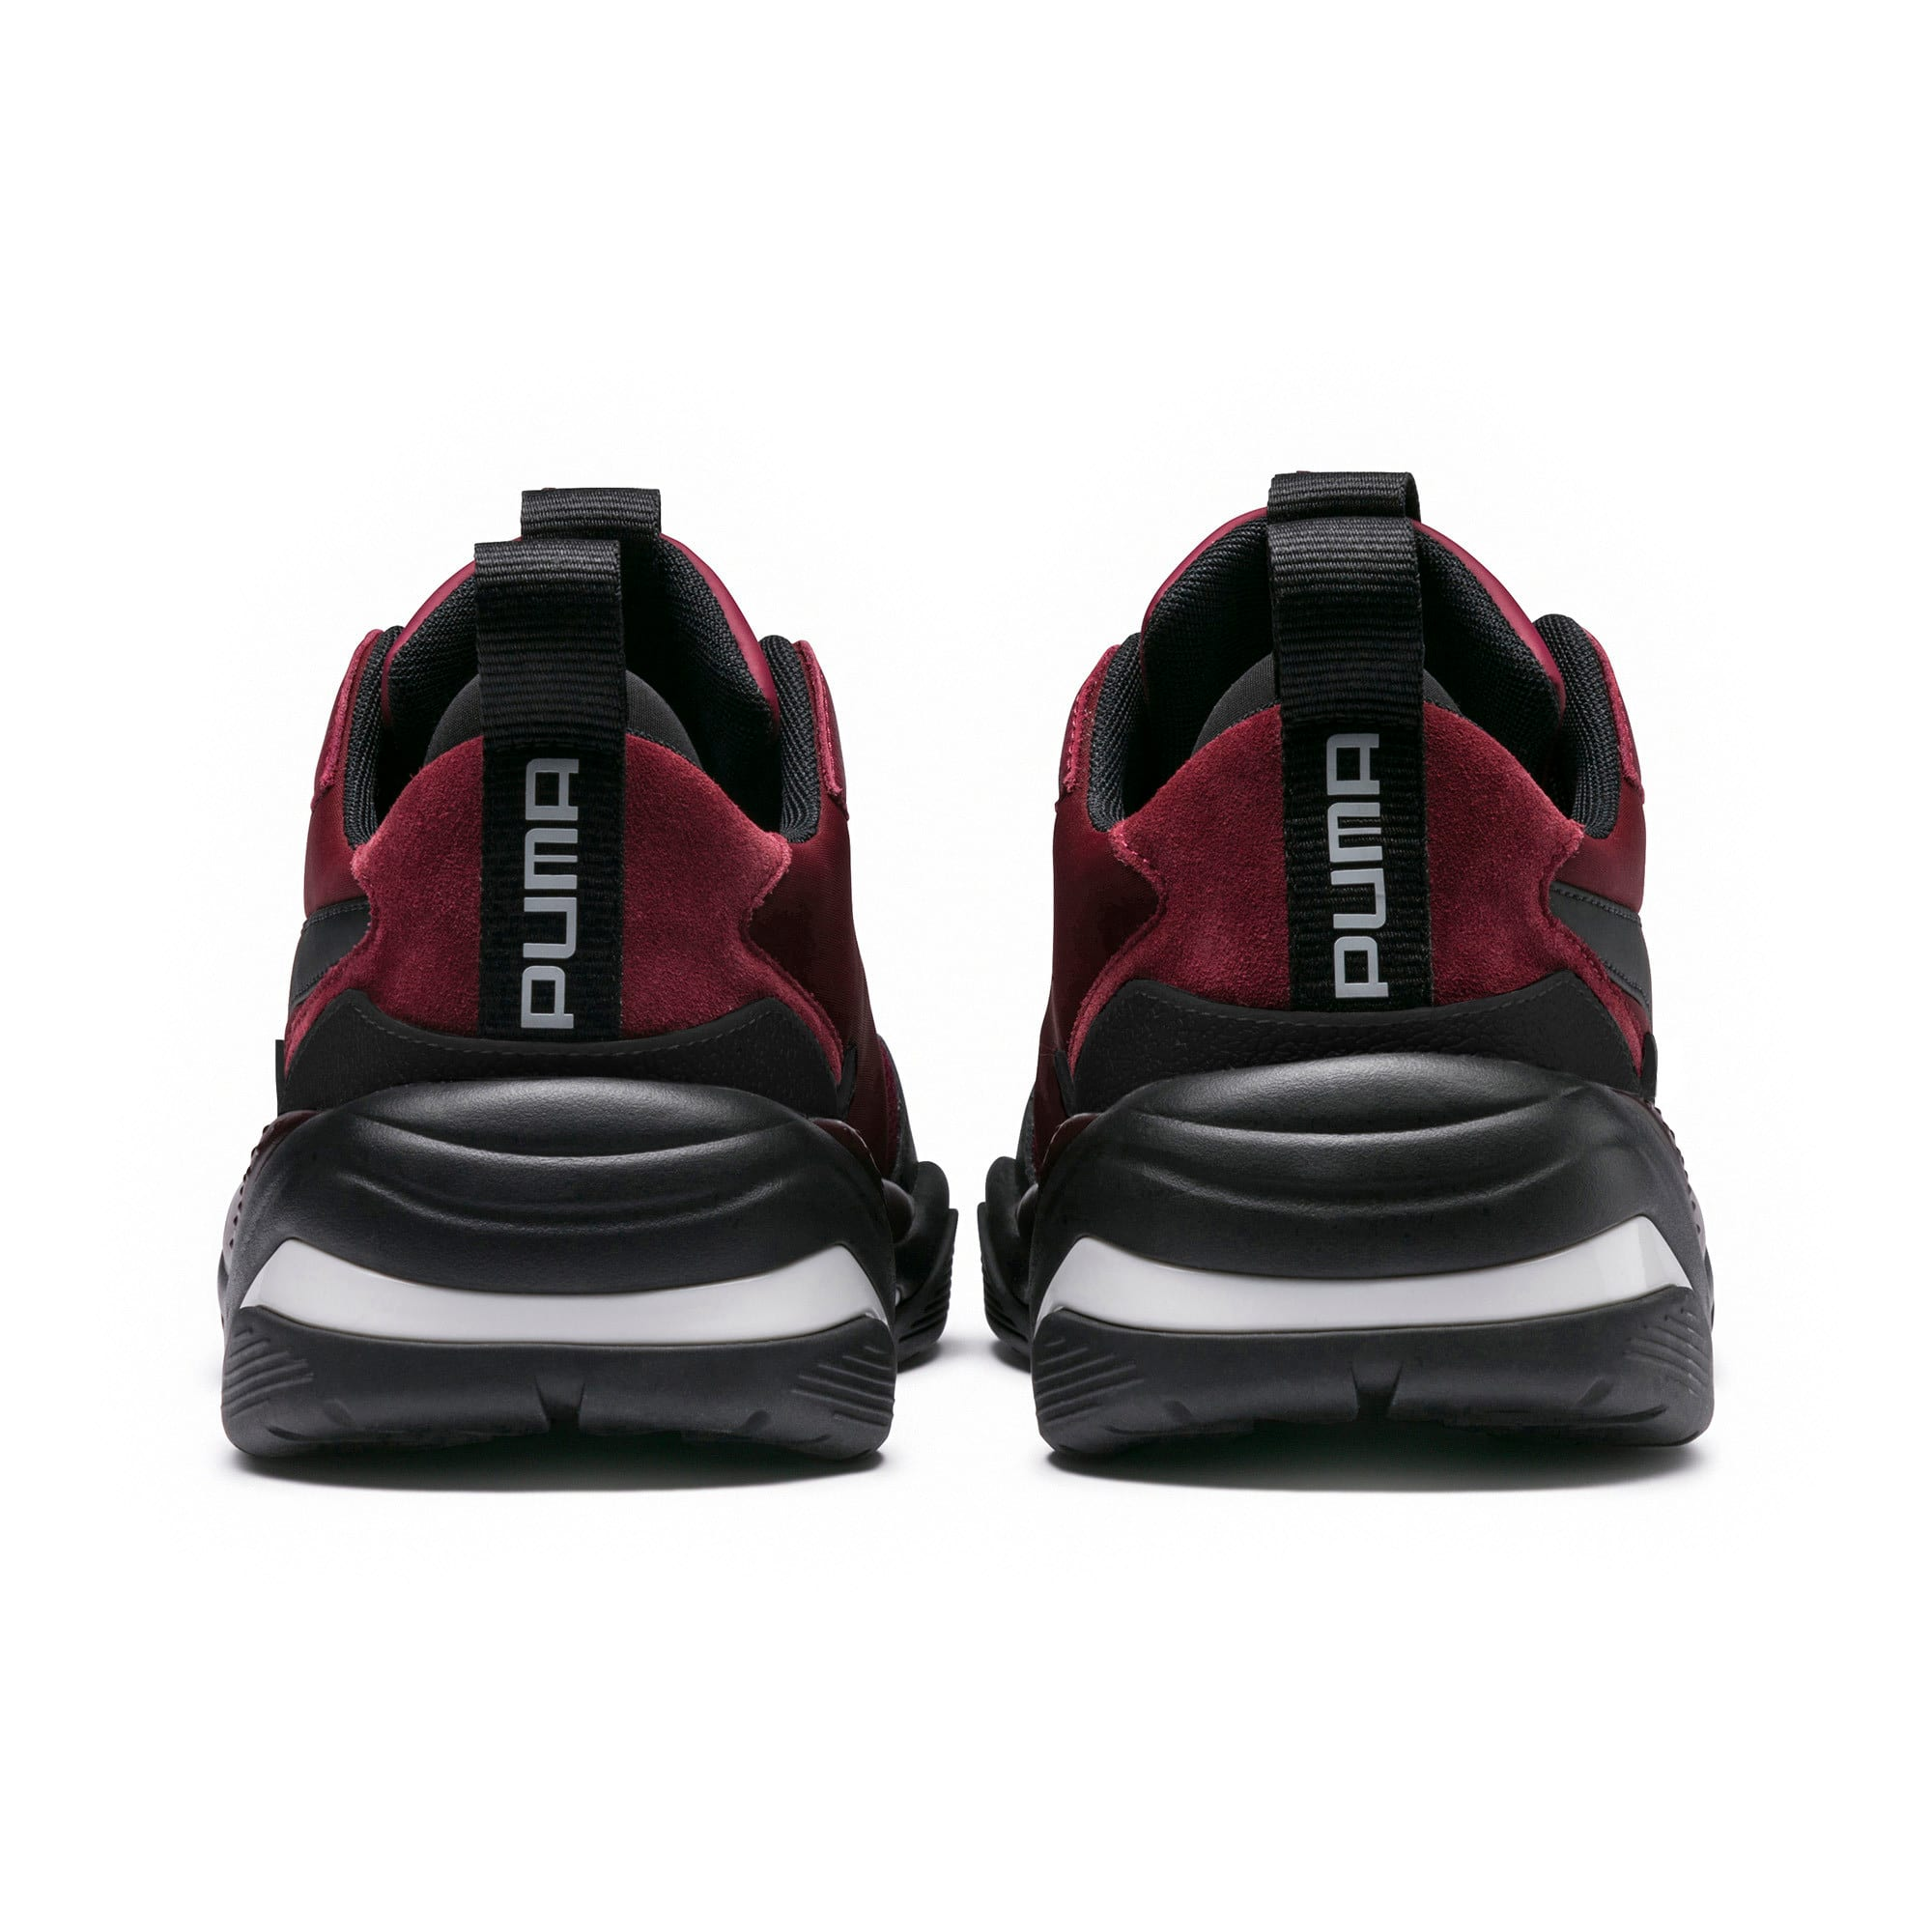 Thumbnail 4 of Thunder Spectra Sneakers, Rhododendron-P Black-T Port, medium